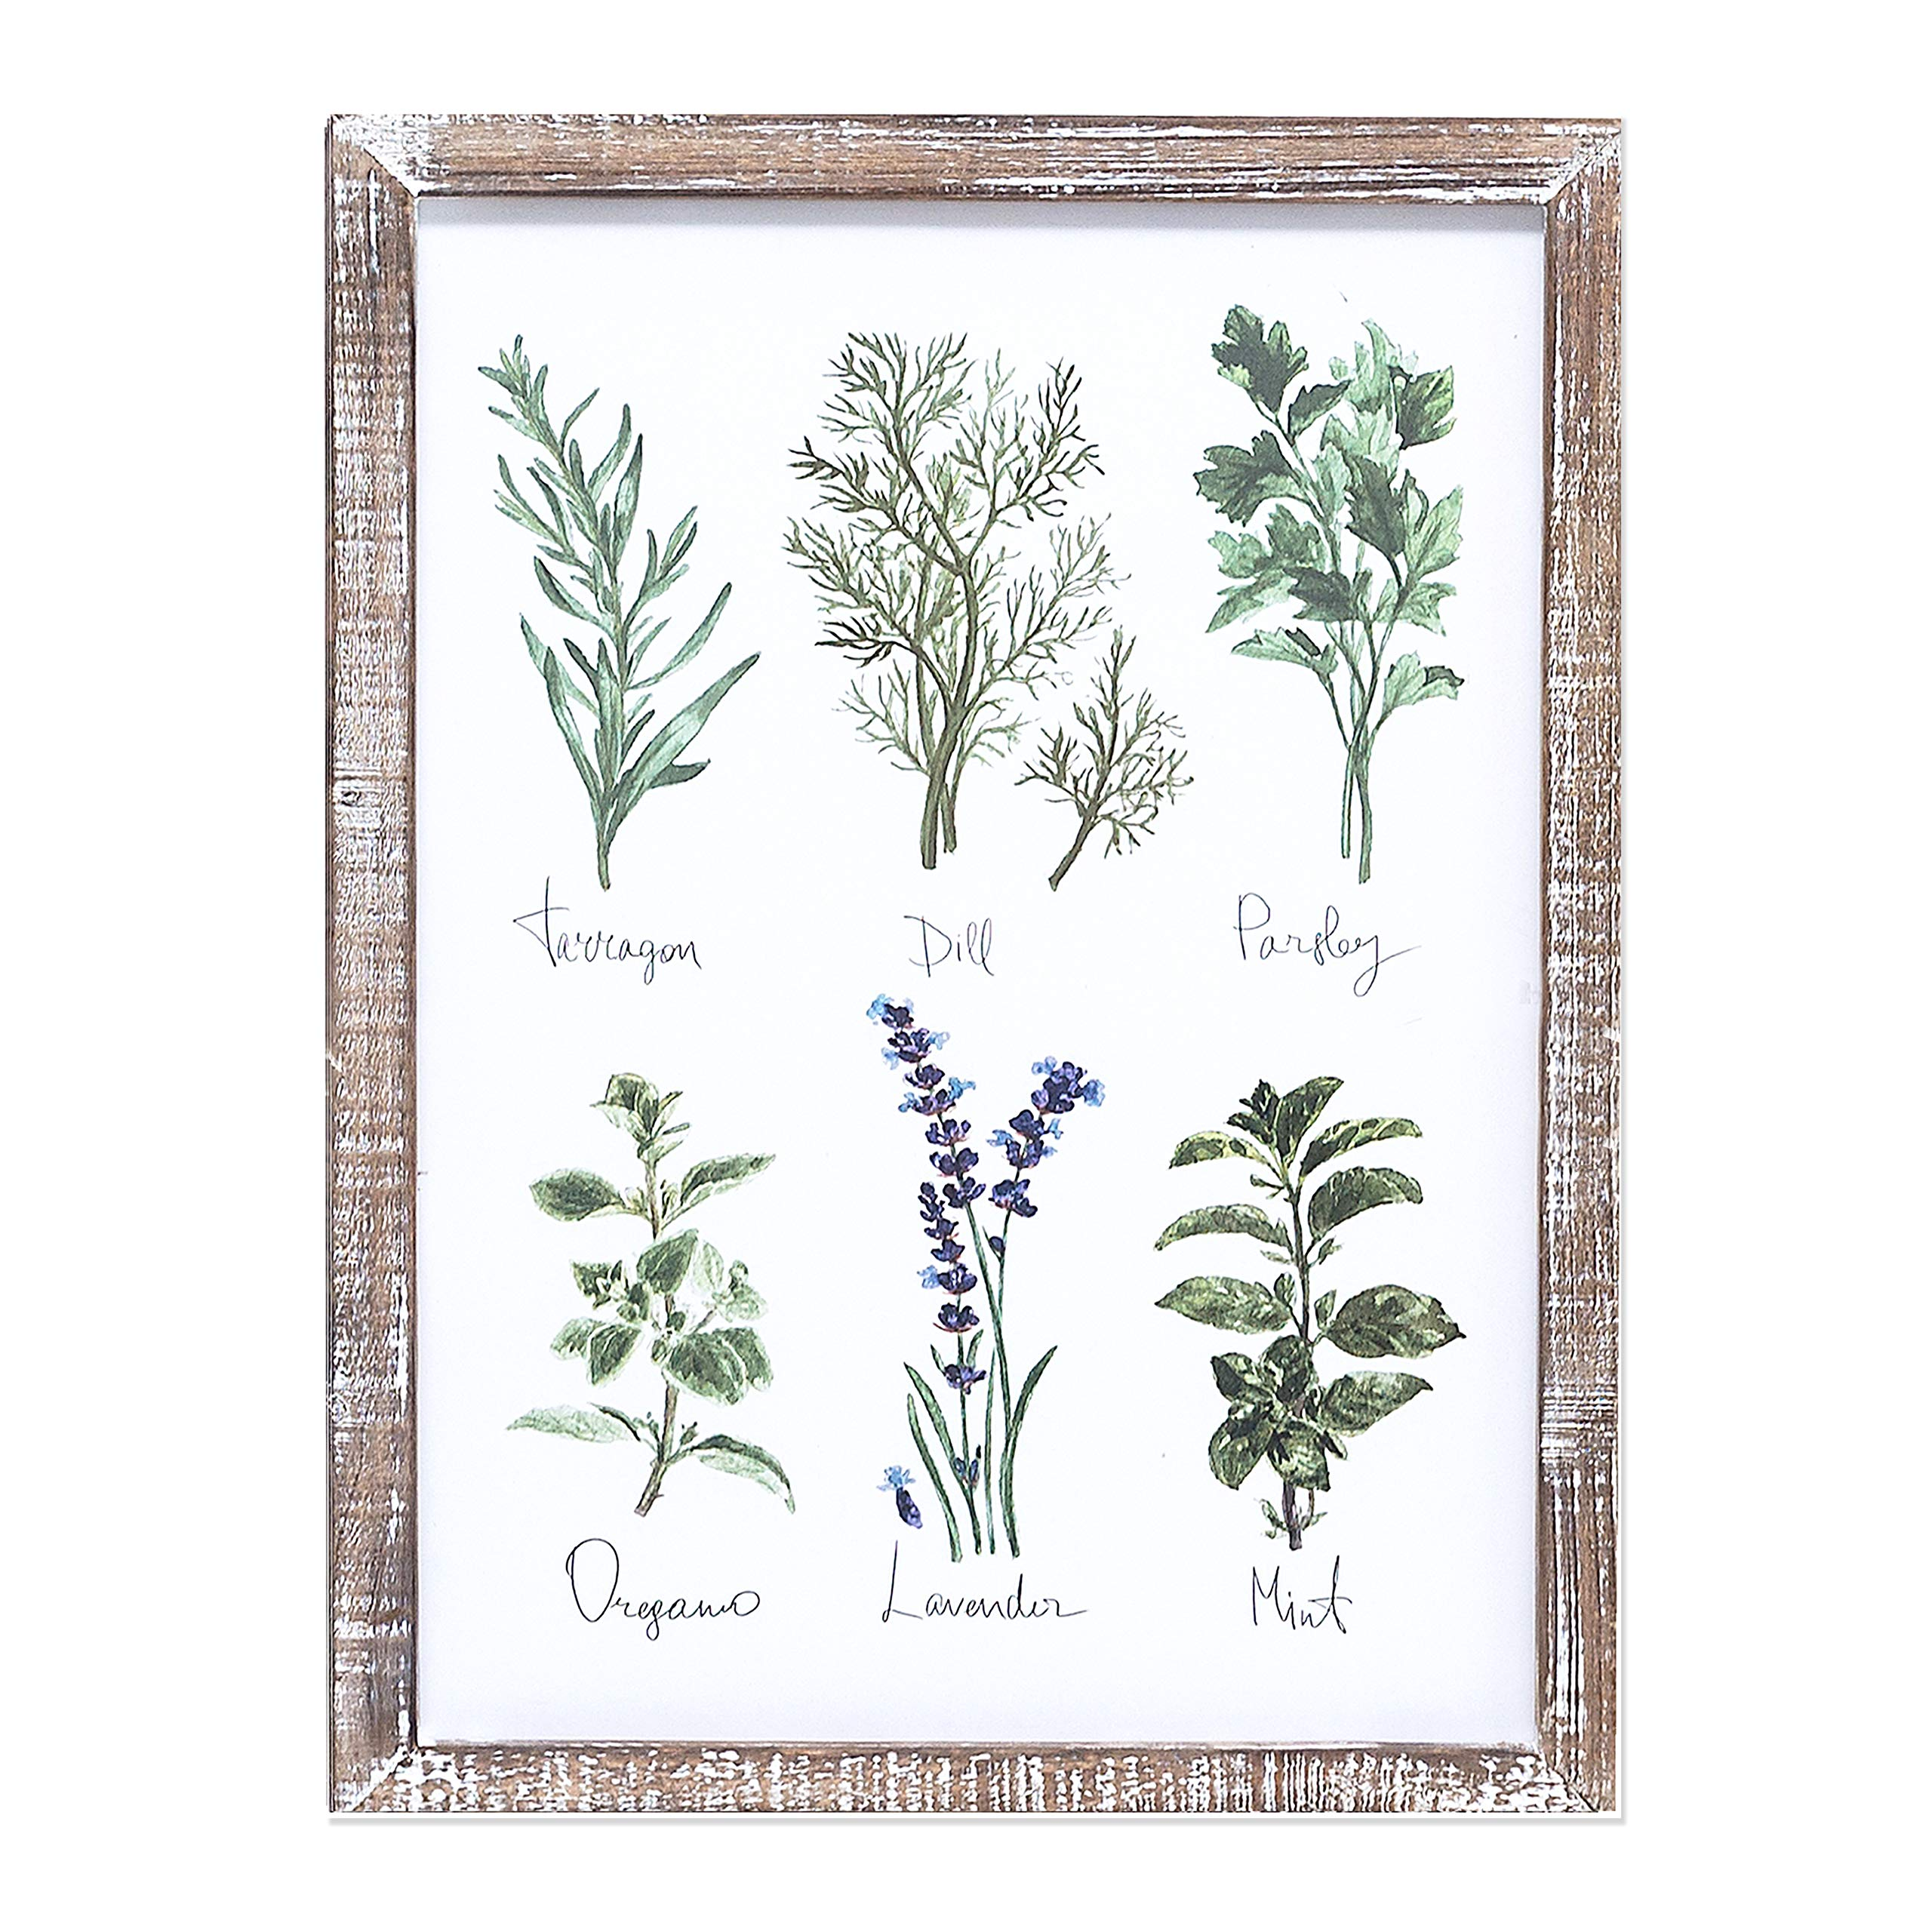 Barnyard Designs Kitchen Herbs and Spices Wall Art Decor Botanical Print Sign Rustic Country Farmhouse Wood Plaque Framed Home Wall Decor 15.75'' x 11.75'' by Barnyard Designs